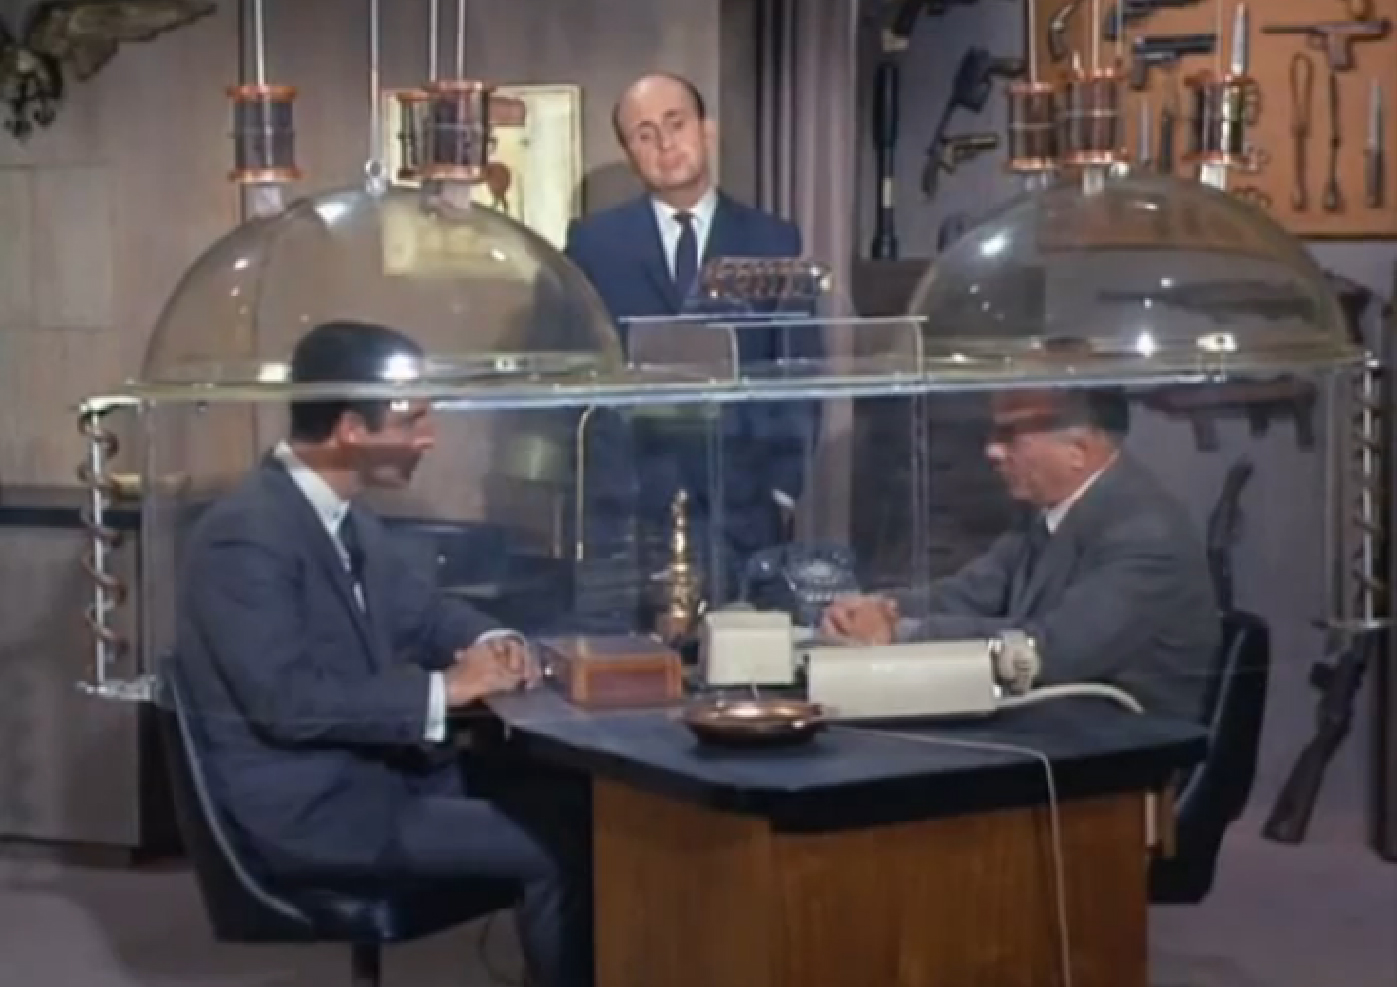 The CIA may have given up on secrecy after never getting the Cone of Silence to work properly.